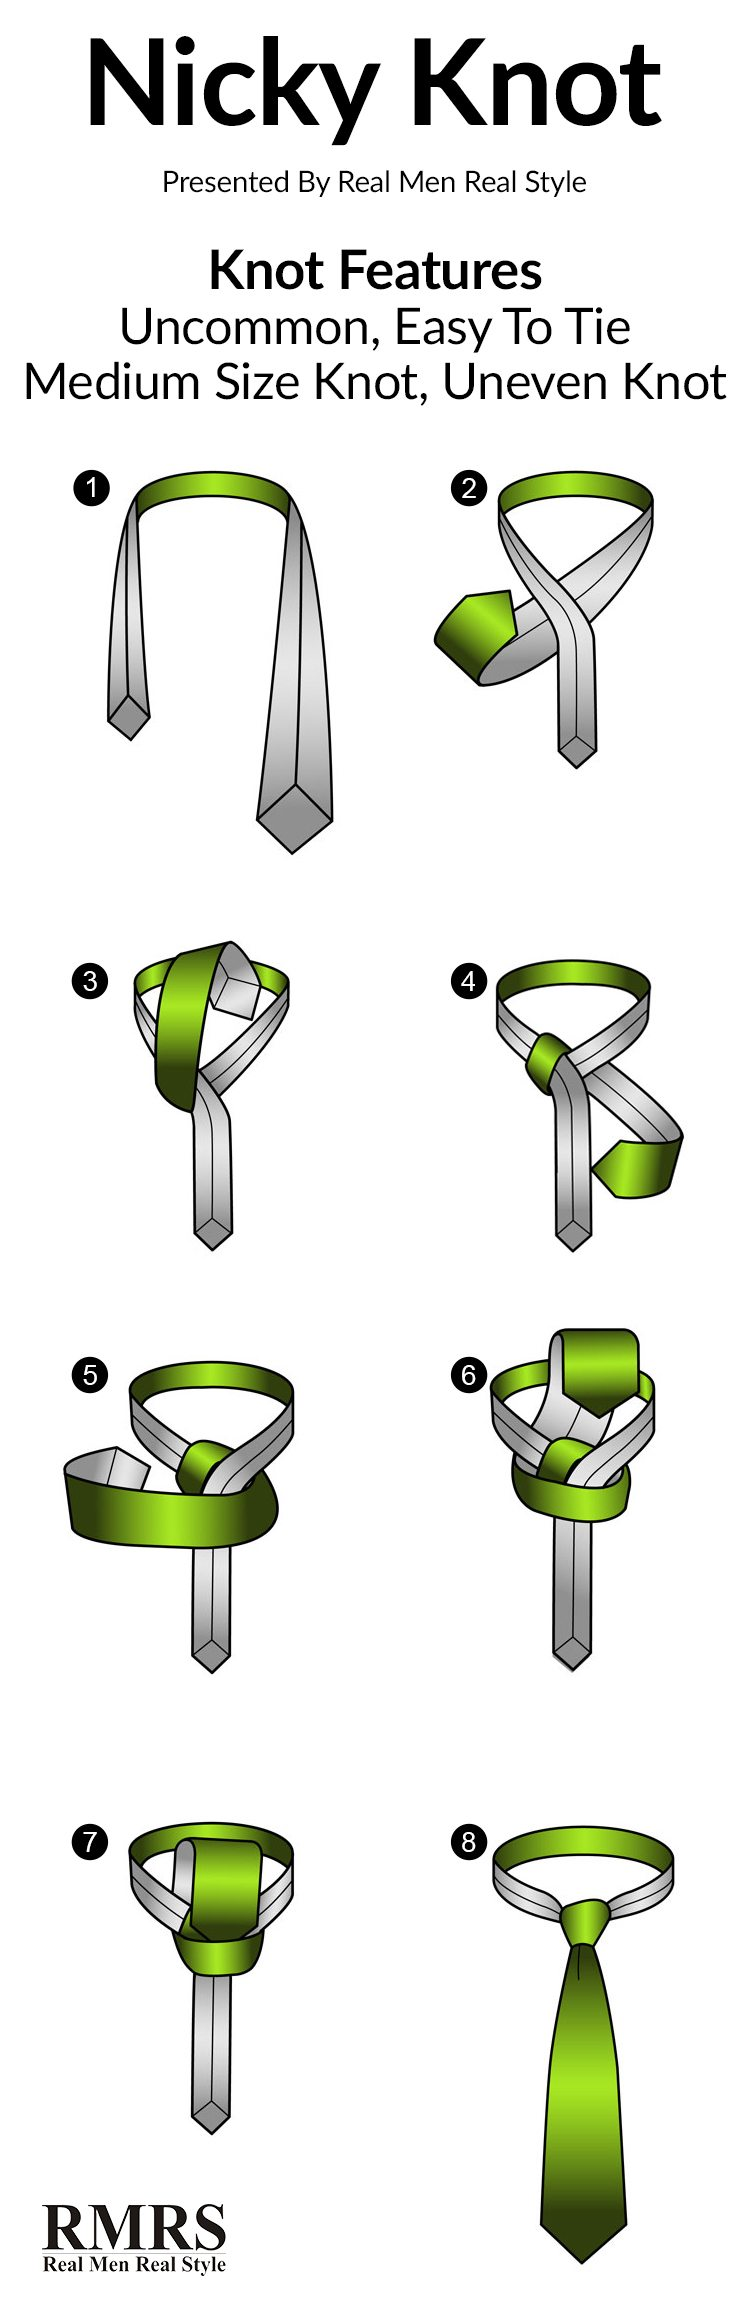 10 Unusual Ways To Tie A Necktie Best Knots Every Man Should Know Tying Diagram Discovered These Quick Inside Out Used For Store Windows And Displays It Requires Relatively Small Amount Of Length